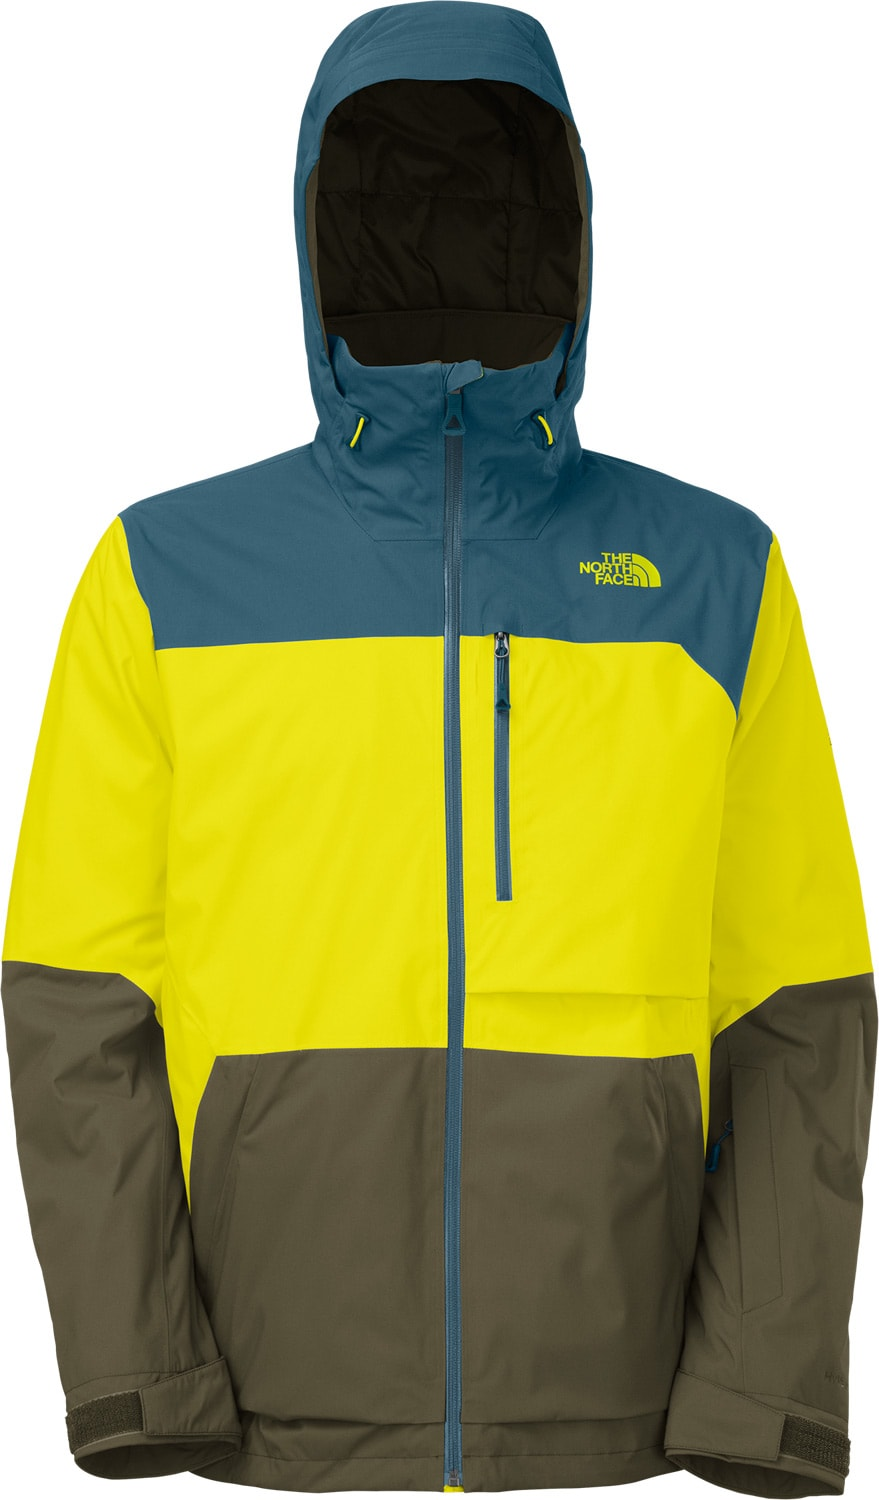 On Sale The North Face Sickline Ski Jacket Up To 50 Off